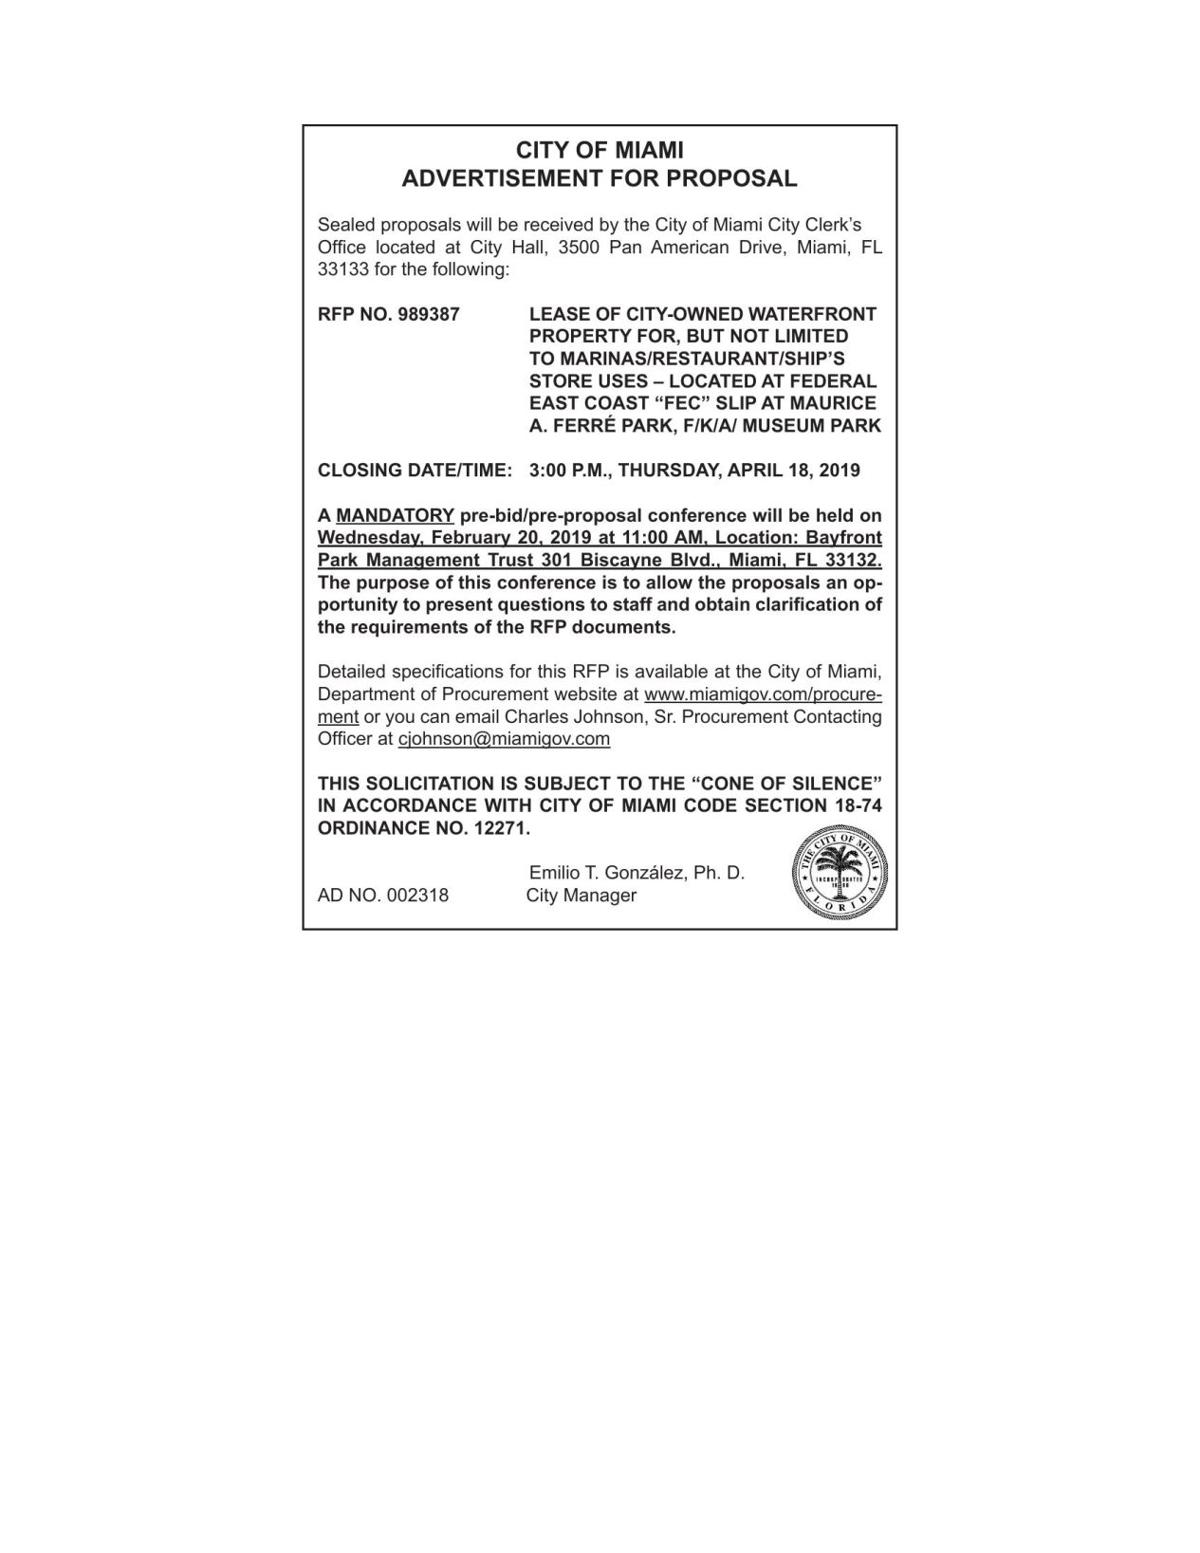 CITY OF MIAMI ADVERTISEMENT FOR PROPOSAL 002318